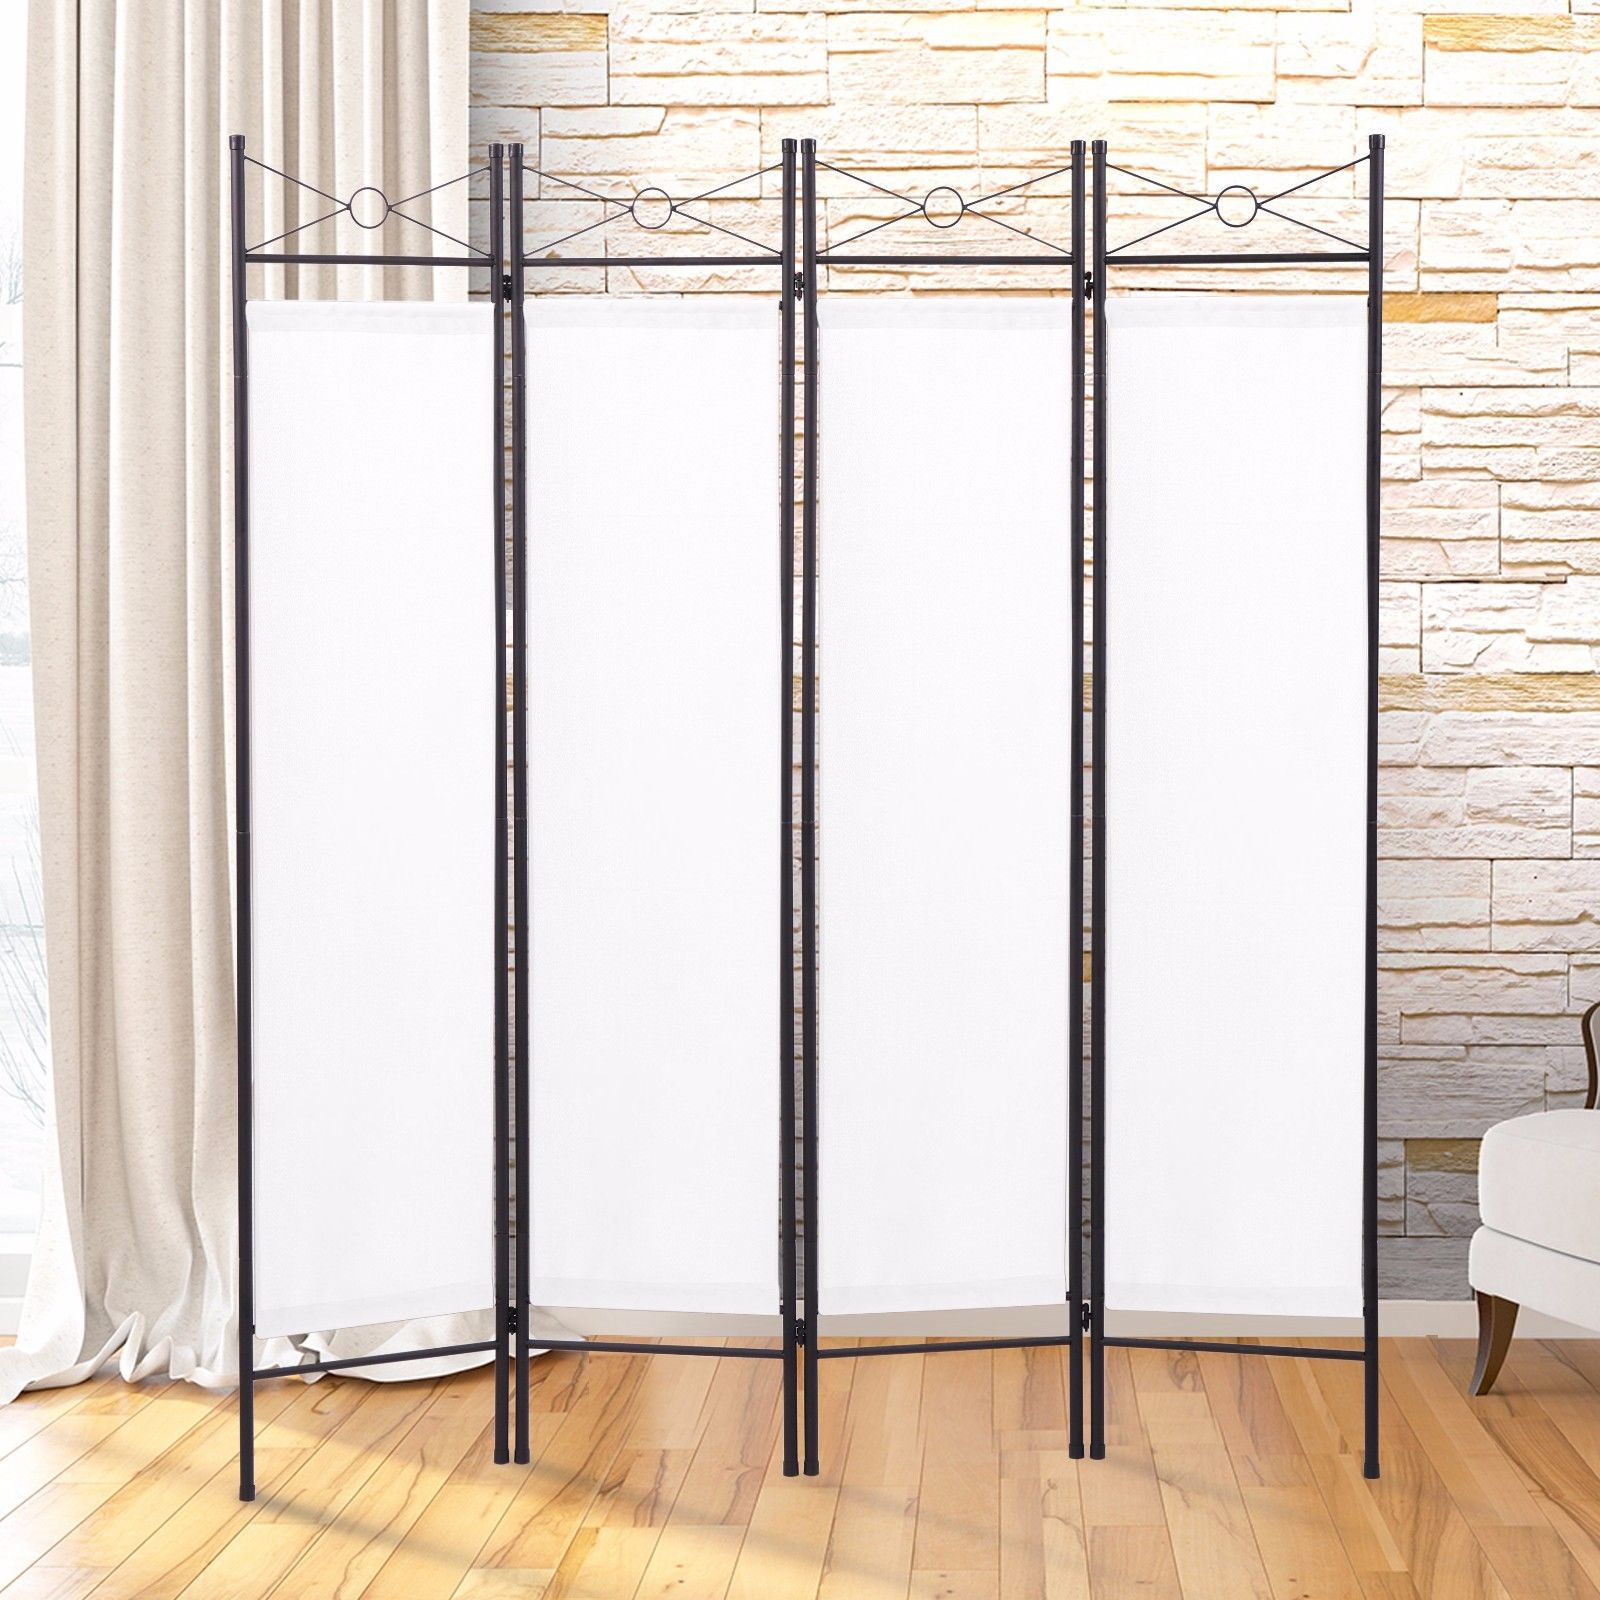 Partition Divider portable rooms partitions